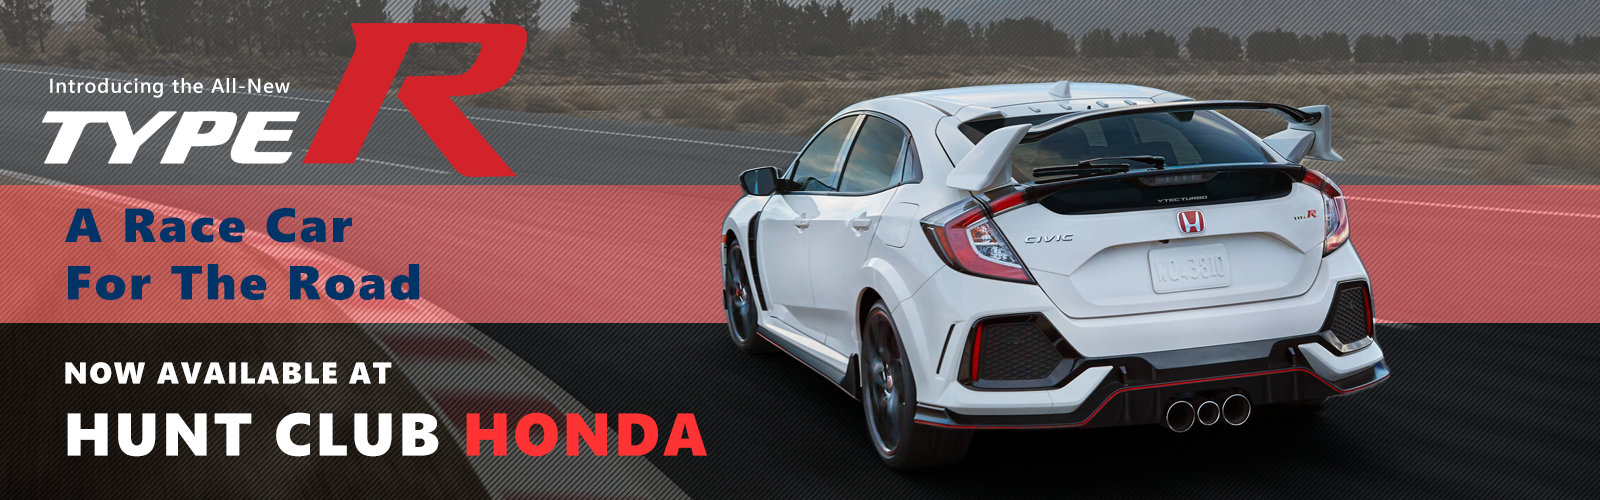 All-new type r